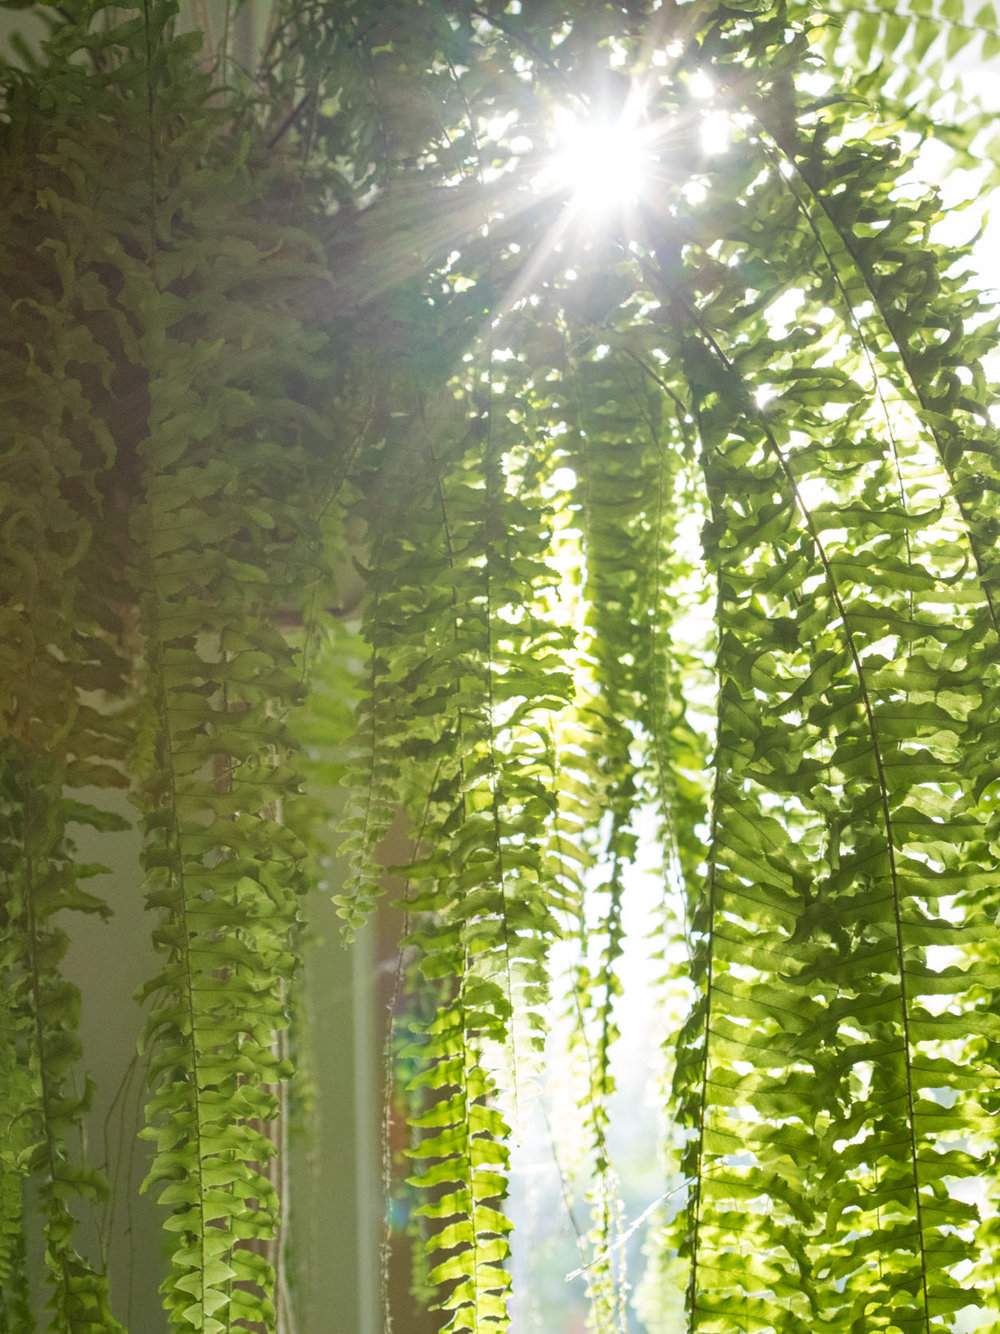 Boston Fern - Latin name: Nephrolepis exaltataPot: HangingWater: keep moist alwaysLighting: Morning and/or indirect sunPlanting medium: 1 part good quality potting mix 1 part coconut coir fibreFertilise:Once every 6 months with Dynamic Lifter pellets (teaspoon)Seasol (seaweed extract) once ever 2 months,Thrive high Nitrogen liquid fertiliser once every 3-4 monthsReproduction: Runners and spore (for much older plants)